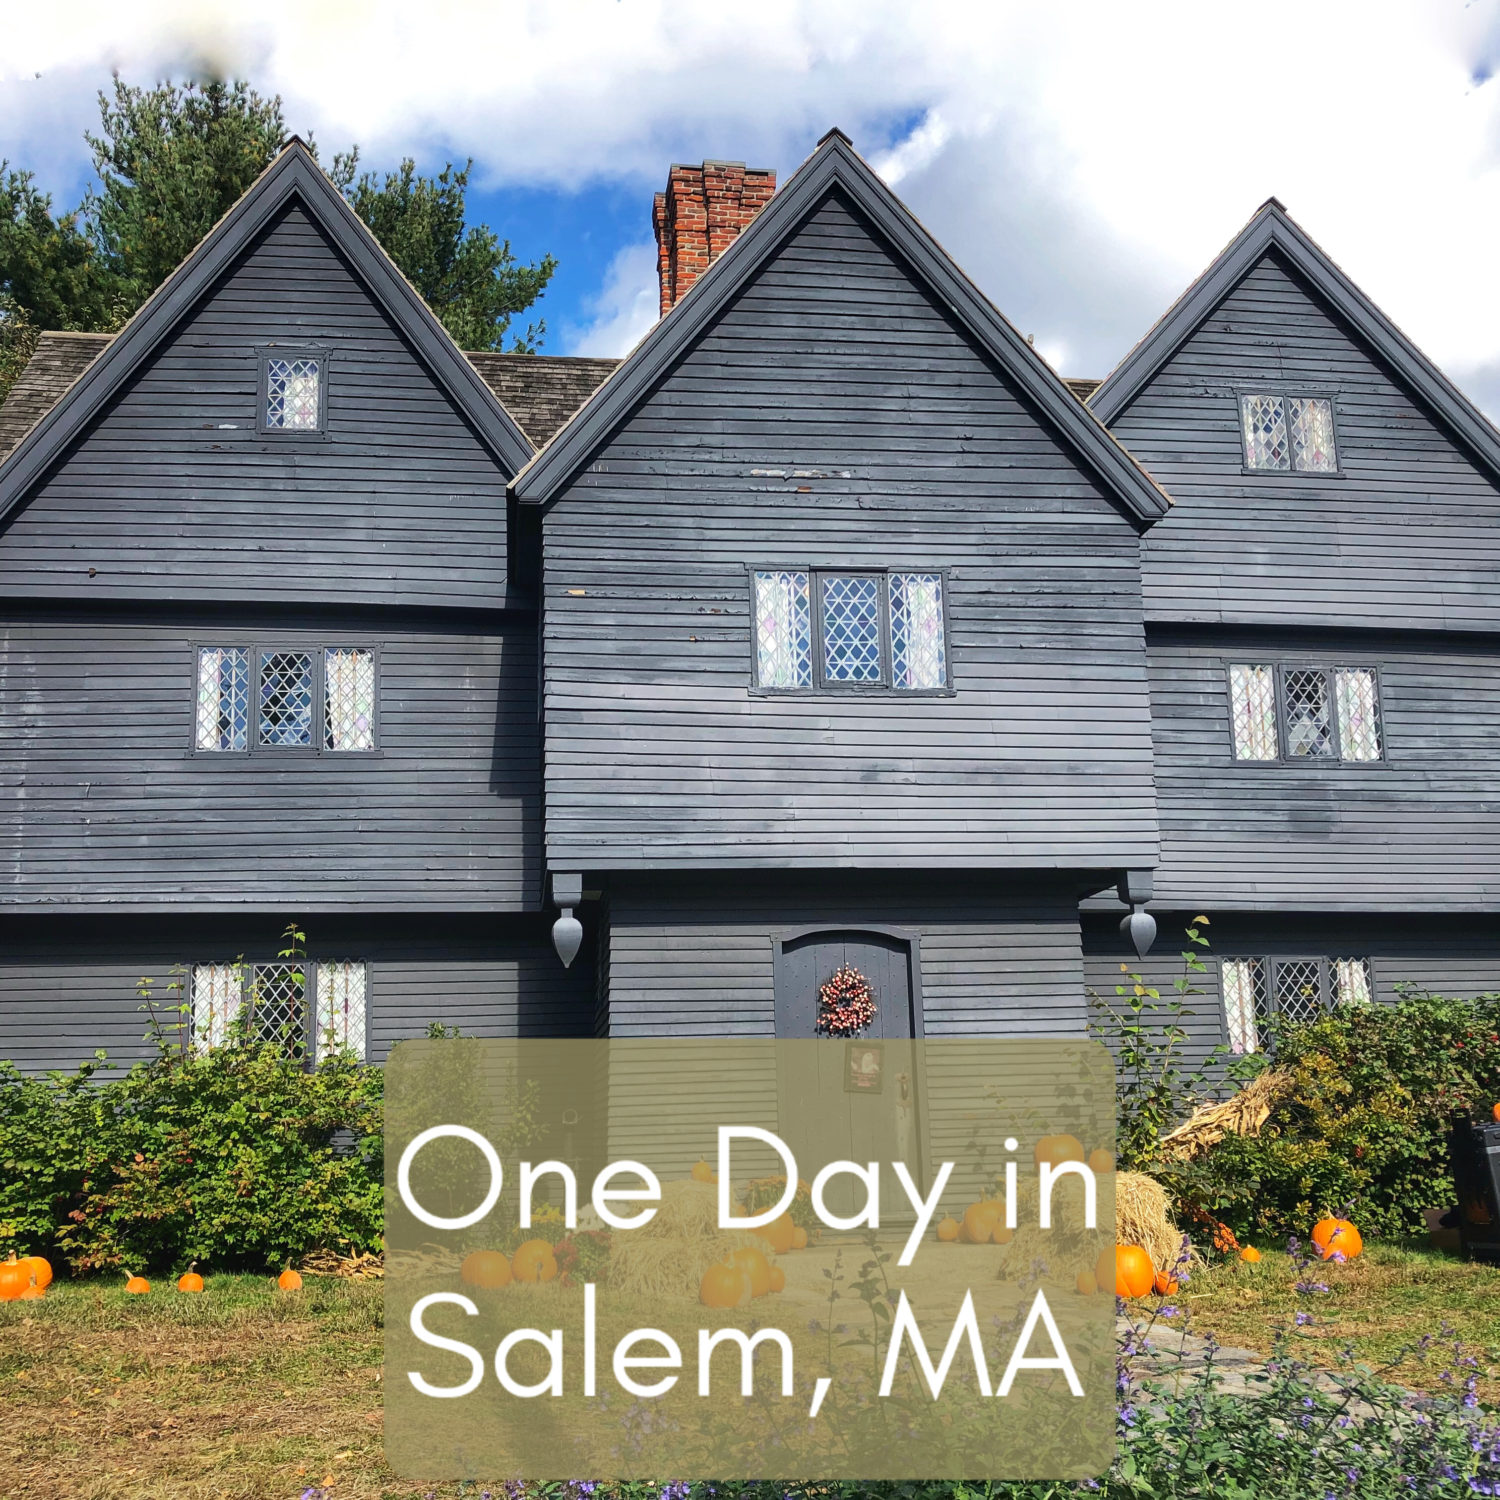 One Day In Salem, MA at Halloween